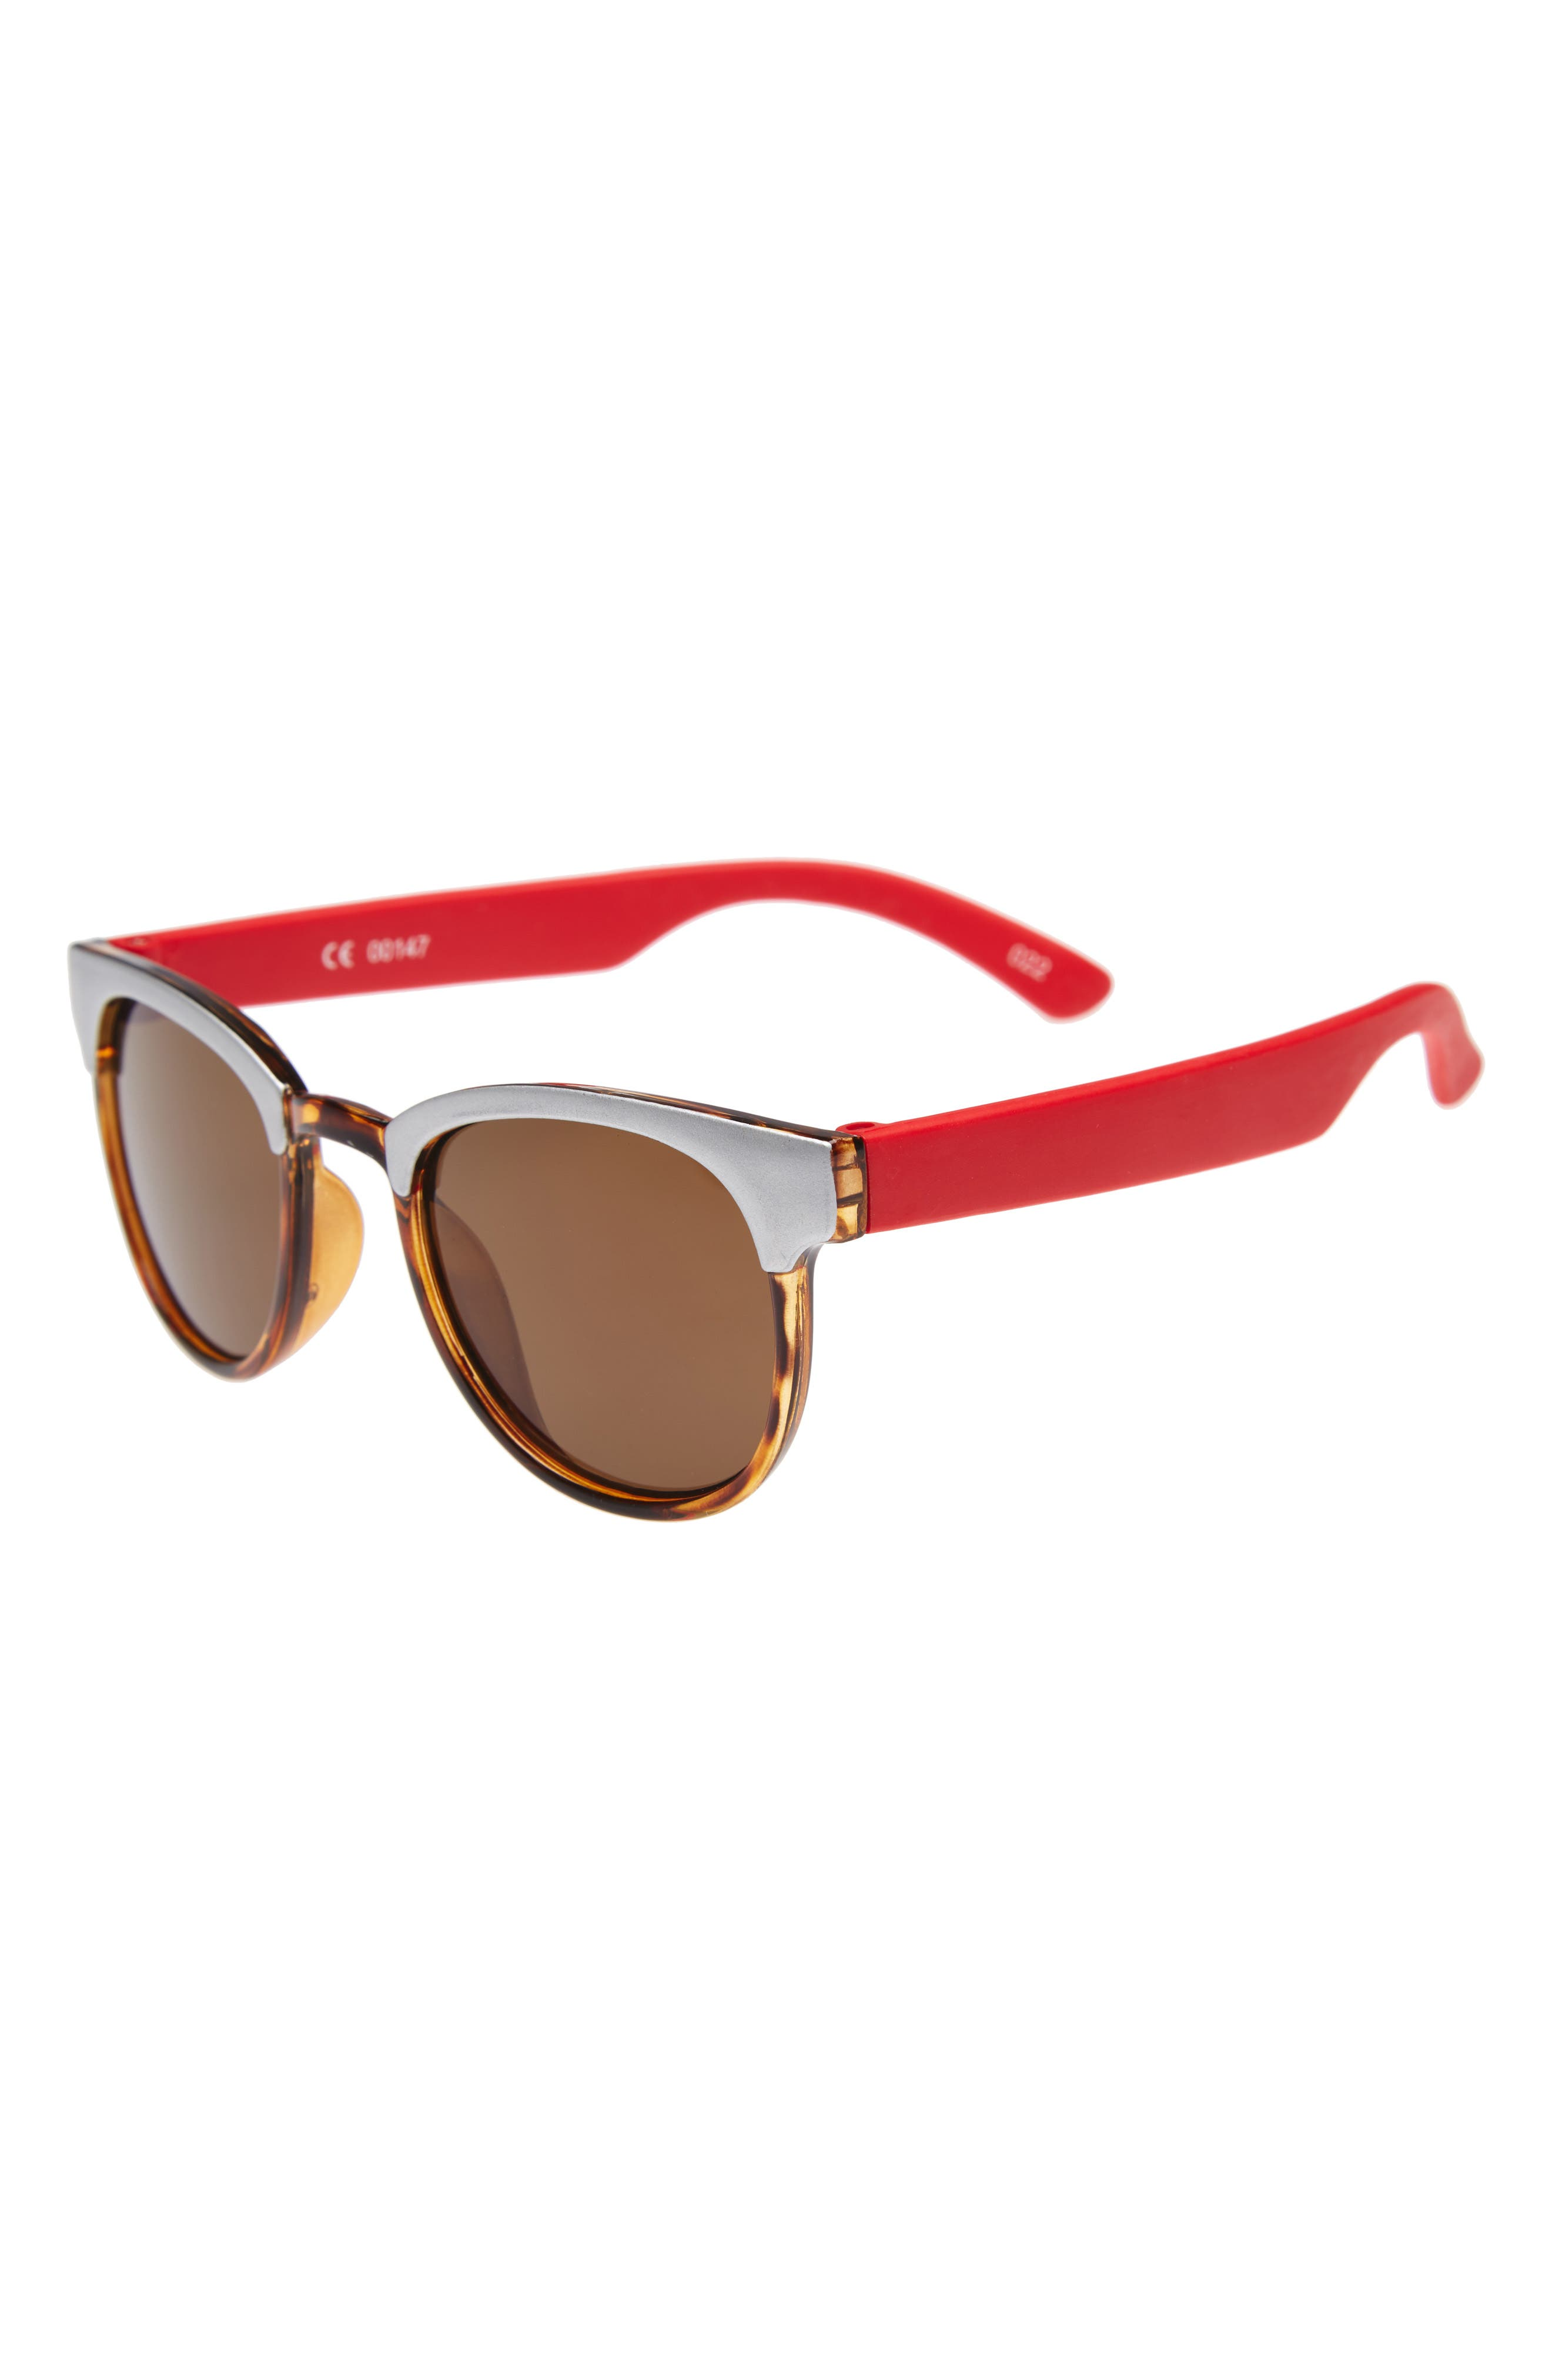 Alternate Image 1 Selected - Starlight Accessories Sunglasses (Boys)